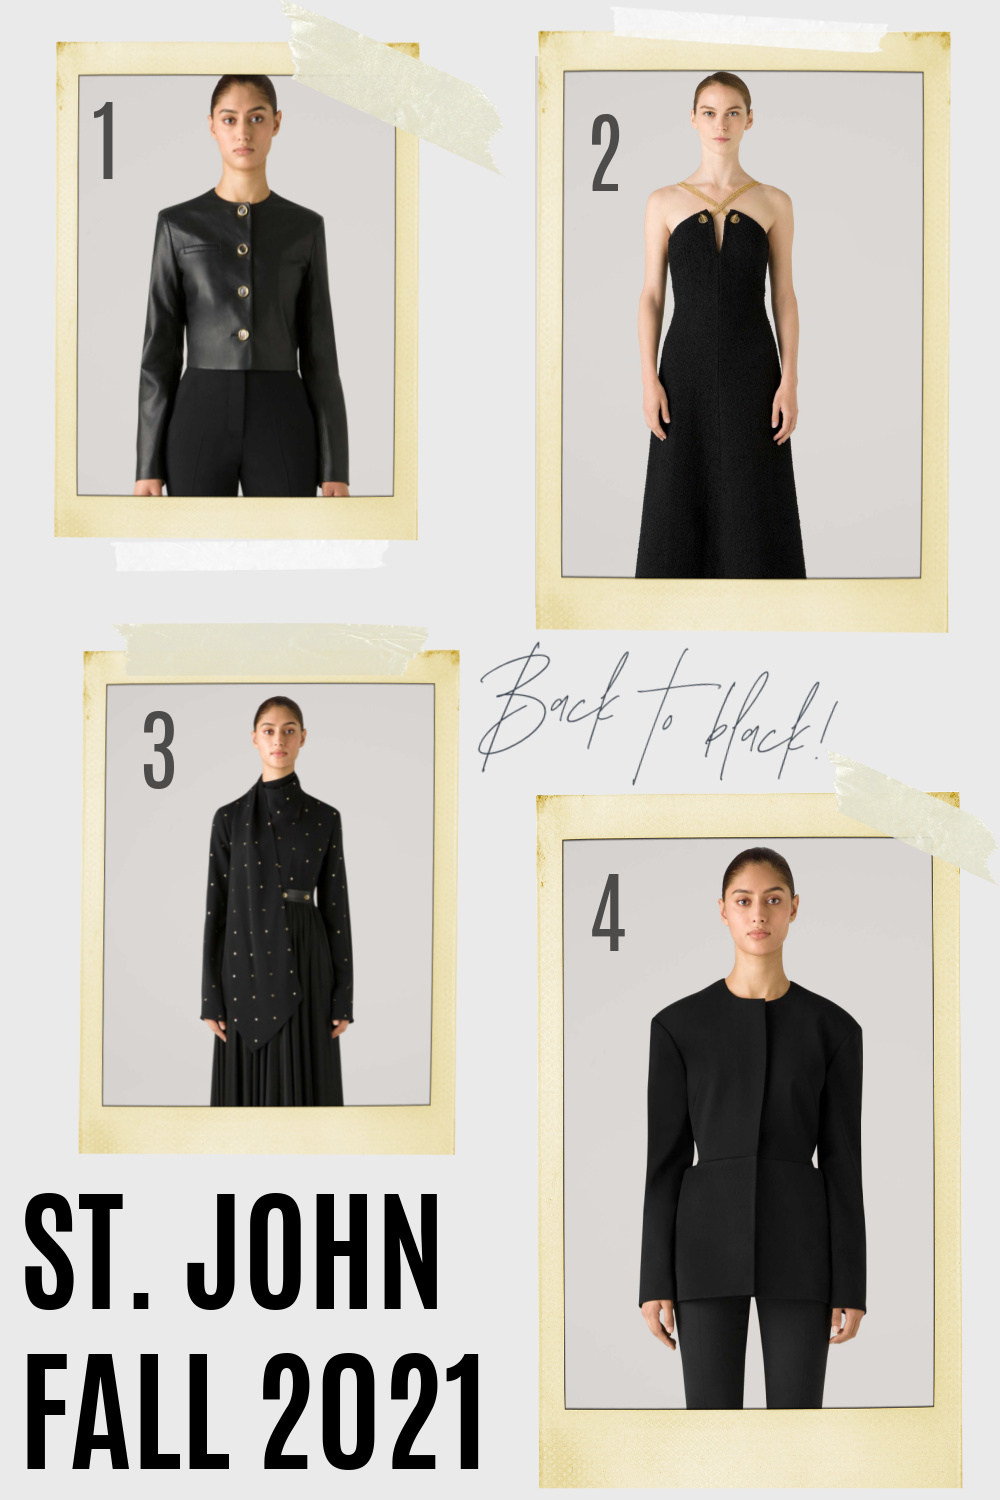 St John Fall 2021 Collection I Black leather jacket and dresses